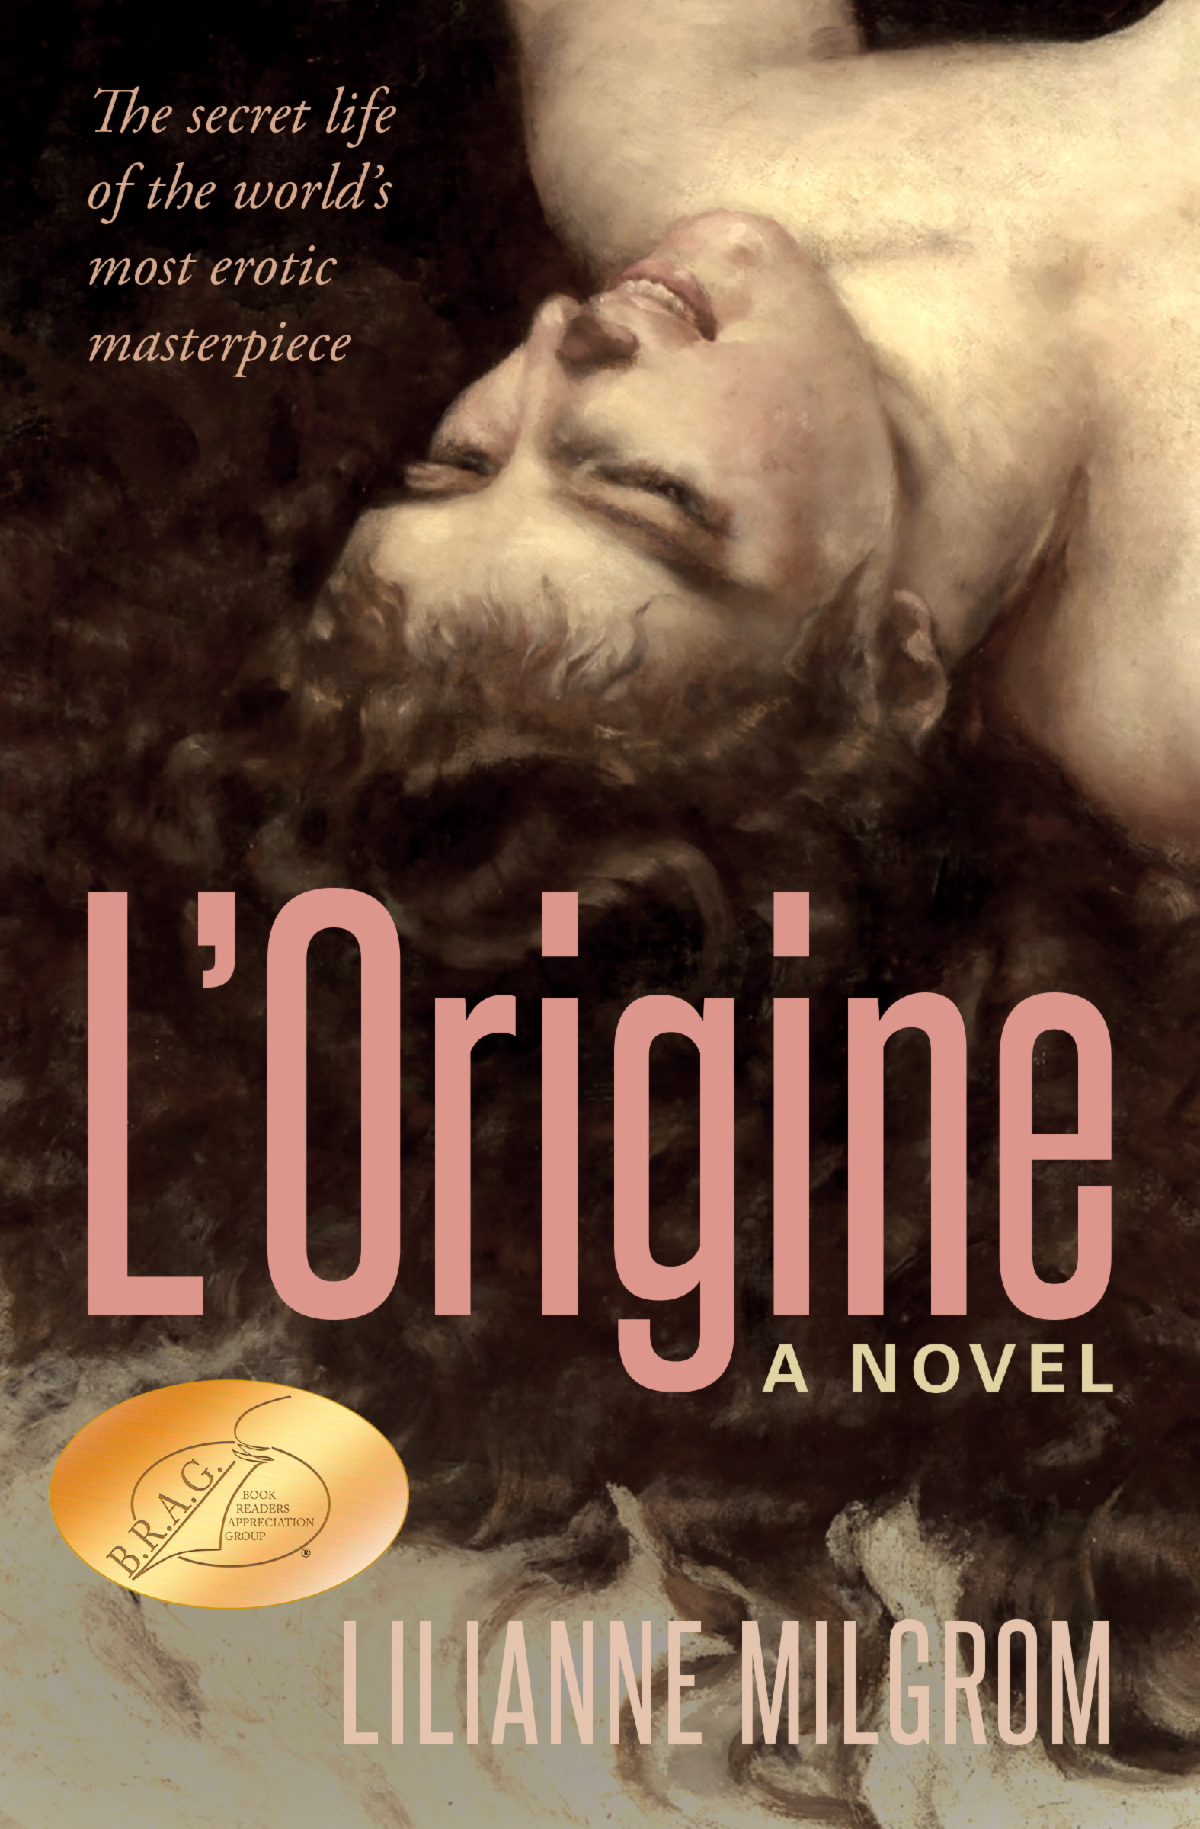 Book cover of L'Origine a novel by Lilianne Milgrom with a BRAG (Book Readers Association Group) medallion